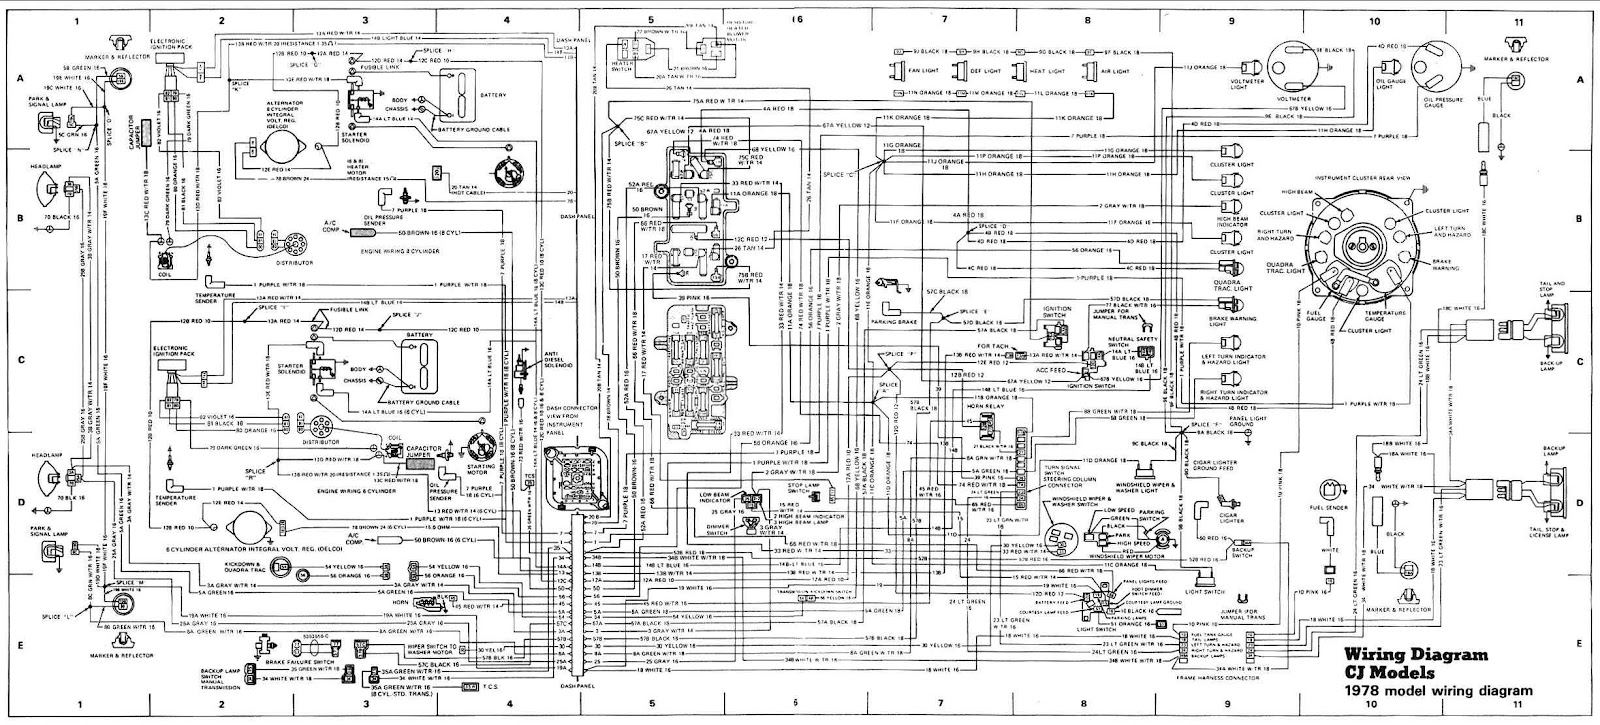 91 jeep cherokee stereo wiring diagram auto electrical wiring diagram 1969 mustang alternator wiring harness 1996 [ 1600 x 725 Pixel ]